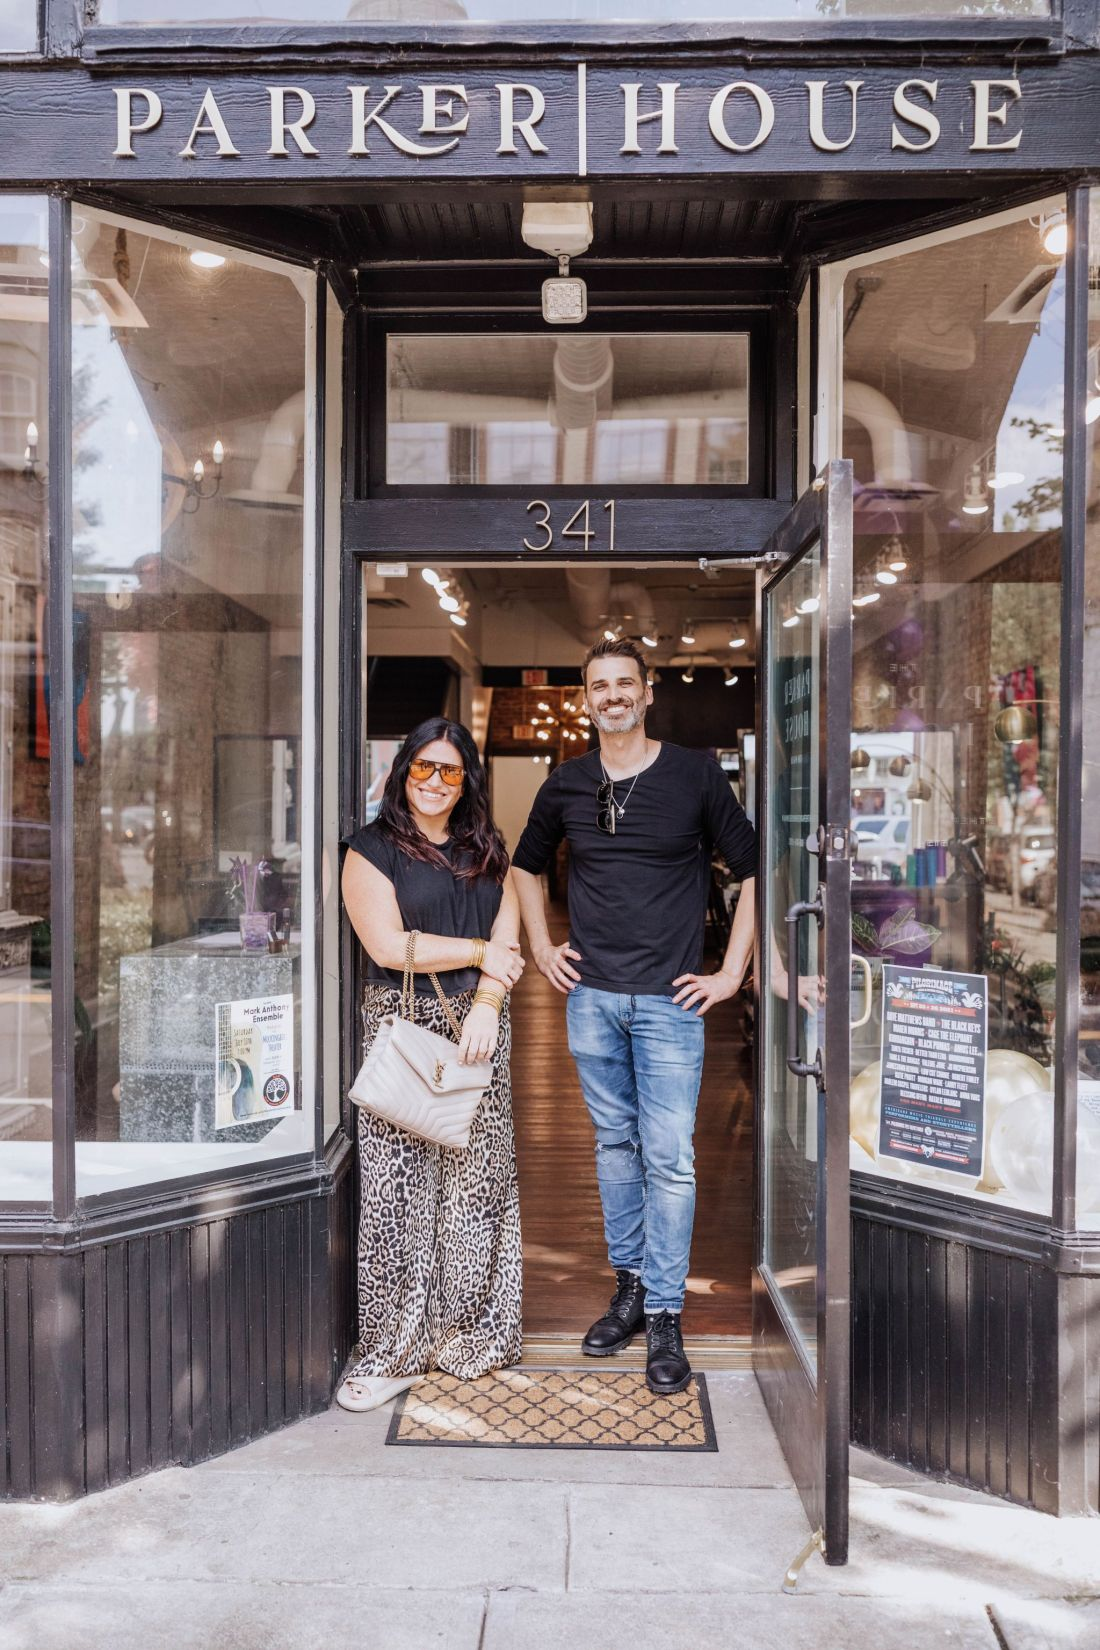 Hair Cut by popular Nashville beauty blog, Modern Day Moguls: image of a woman and a man standing together in the entrance of Parker House Salon.